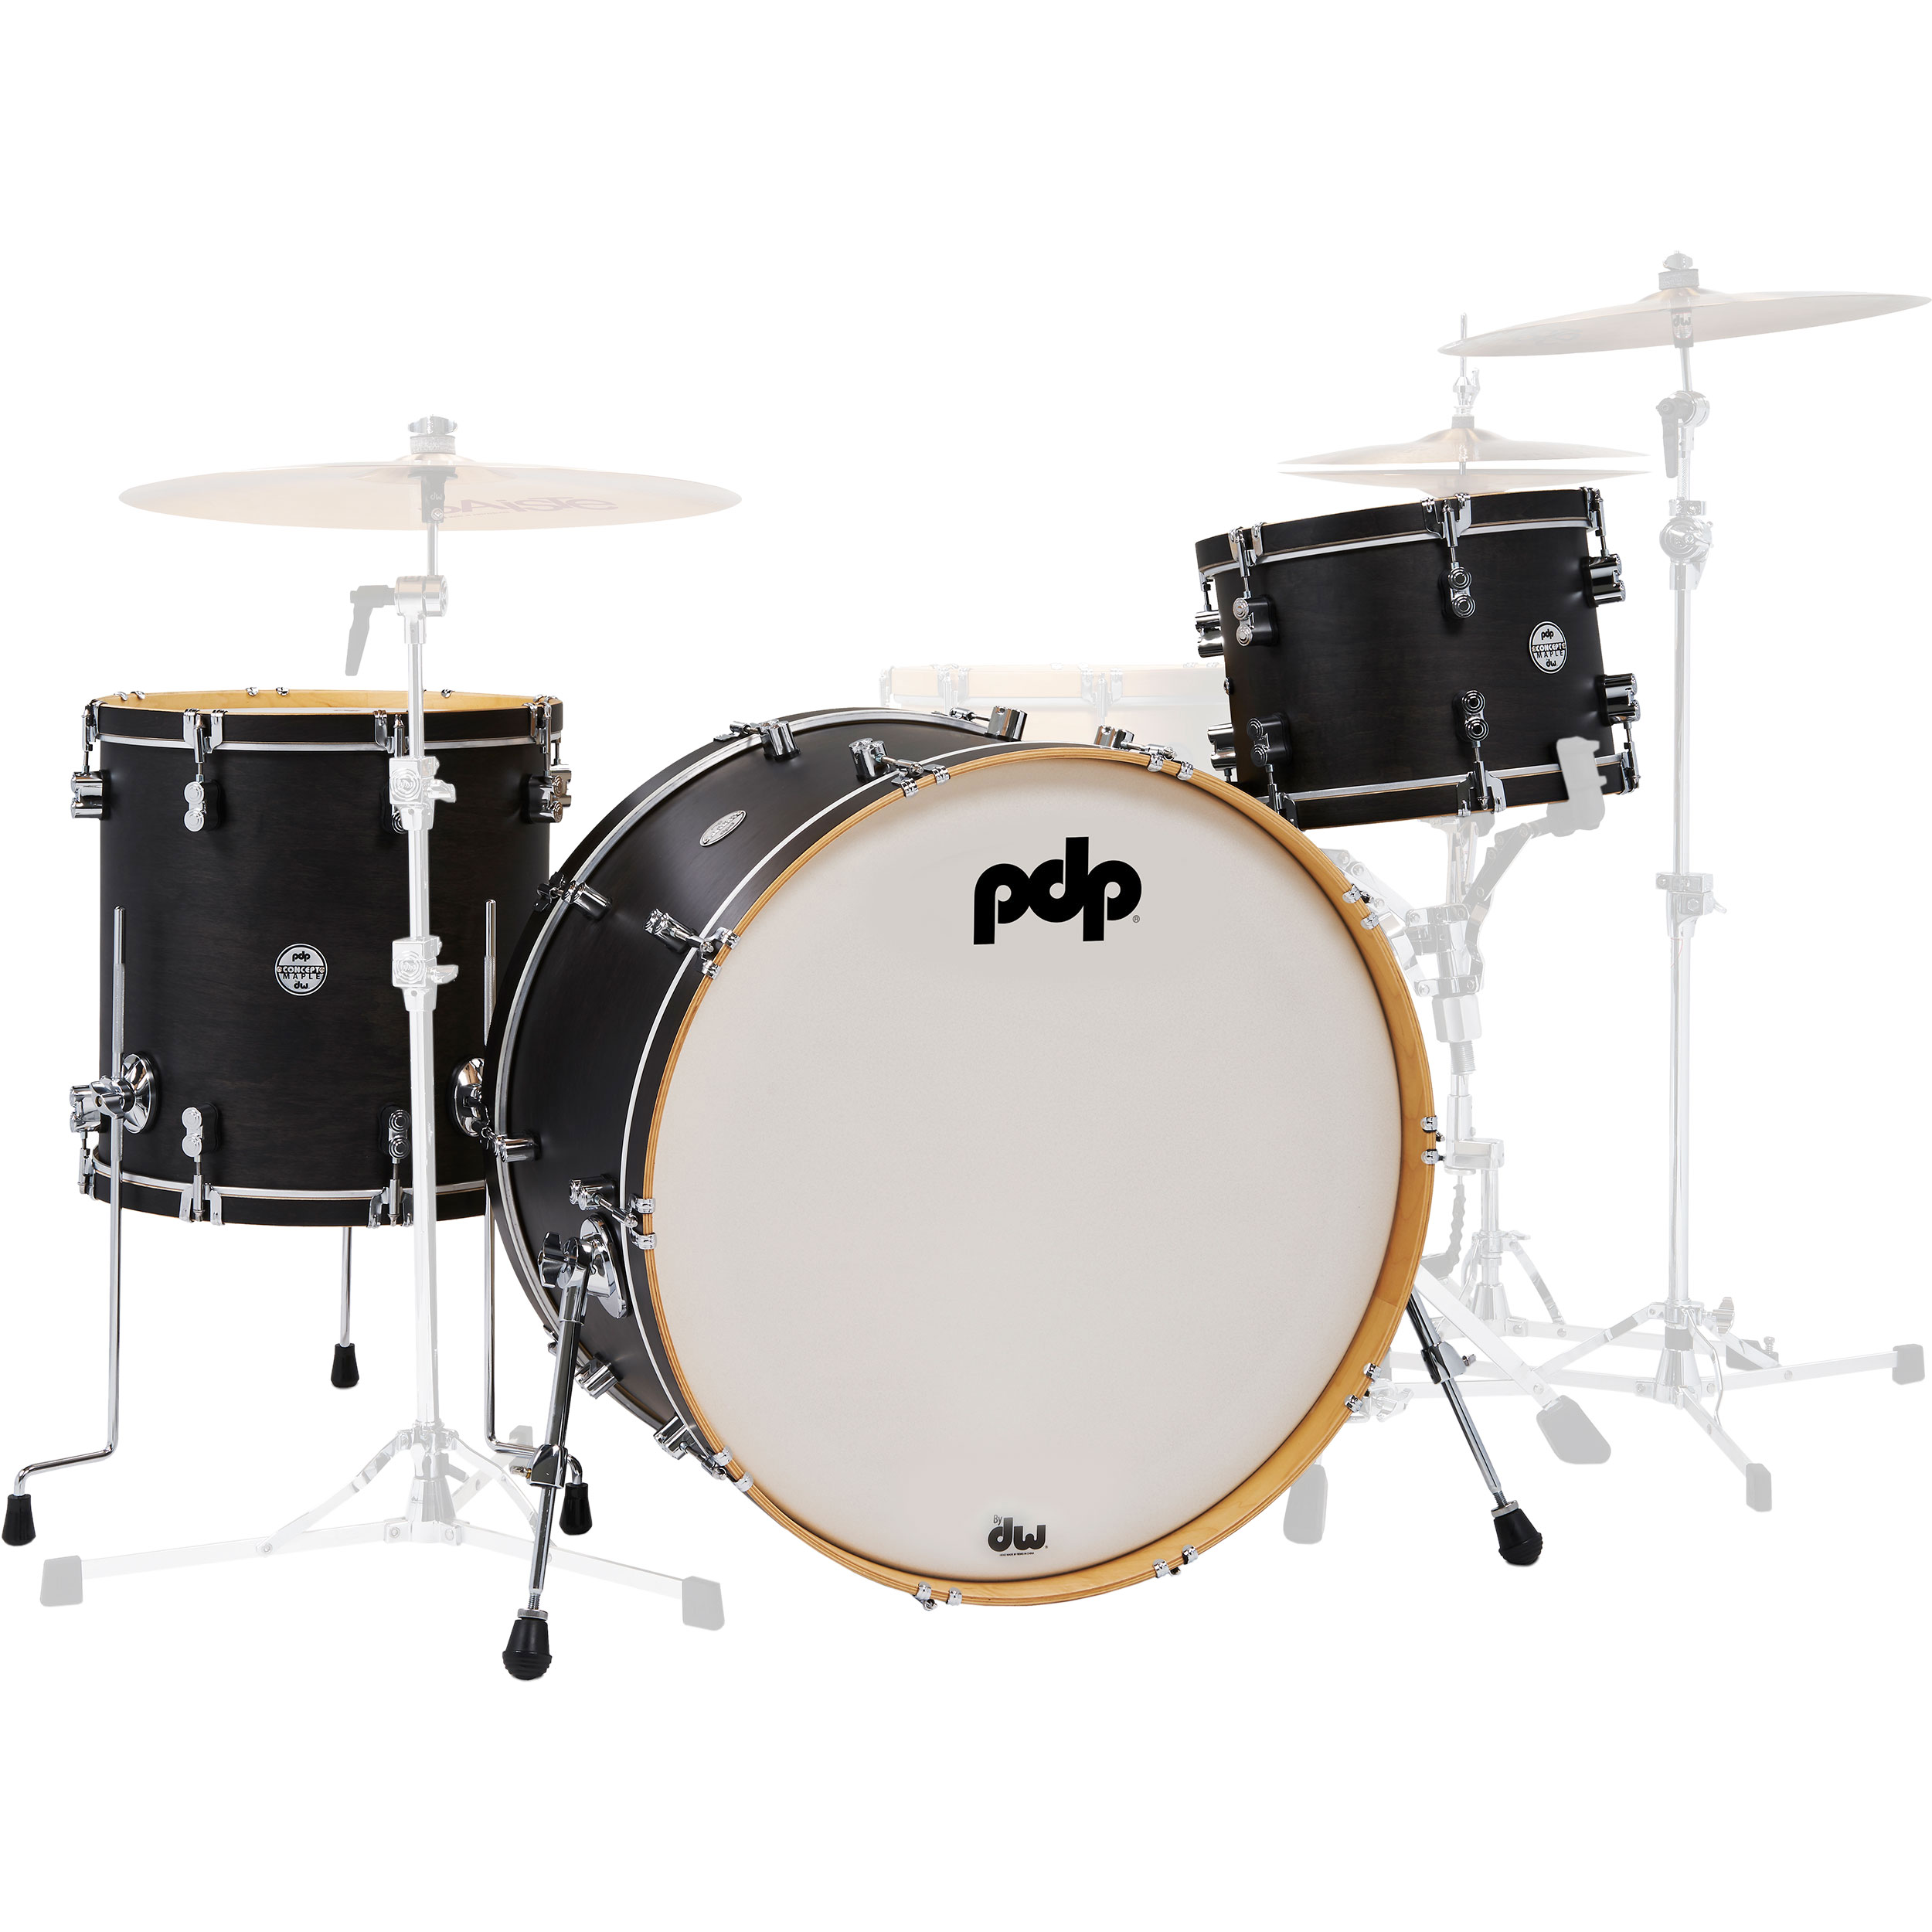 "PDP Concept Maple Classic 3-Piece Drum Set Shell Pack (26"" Bass, 13/16"" Toms)"